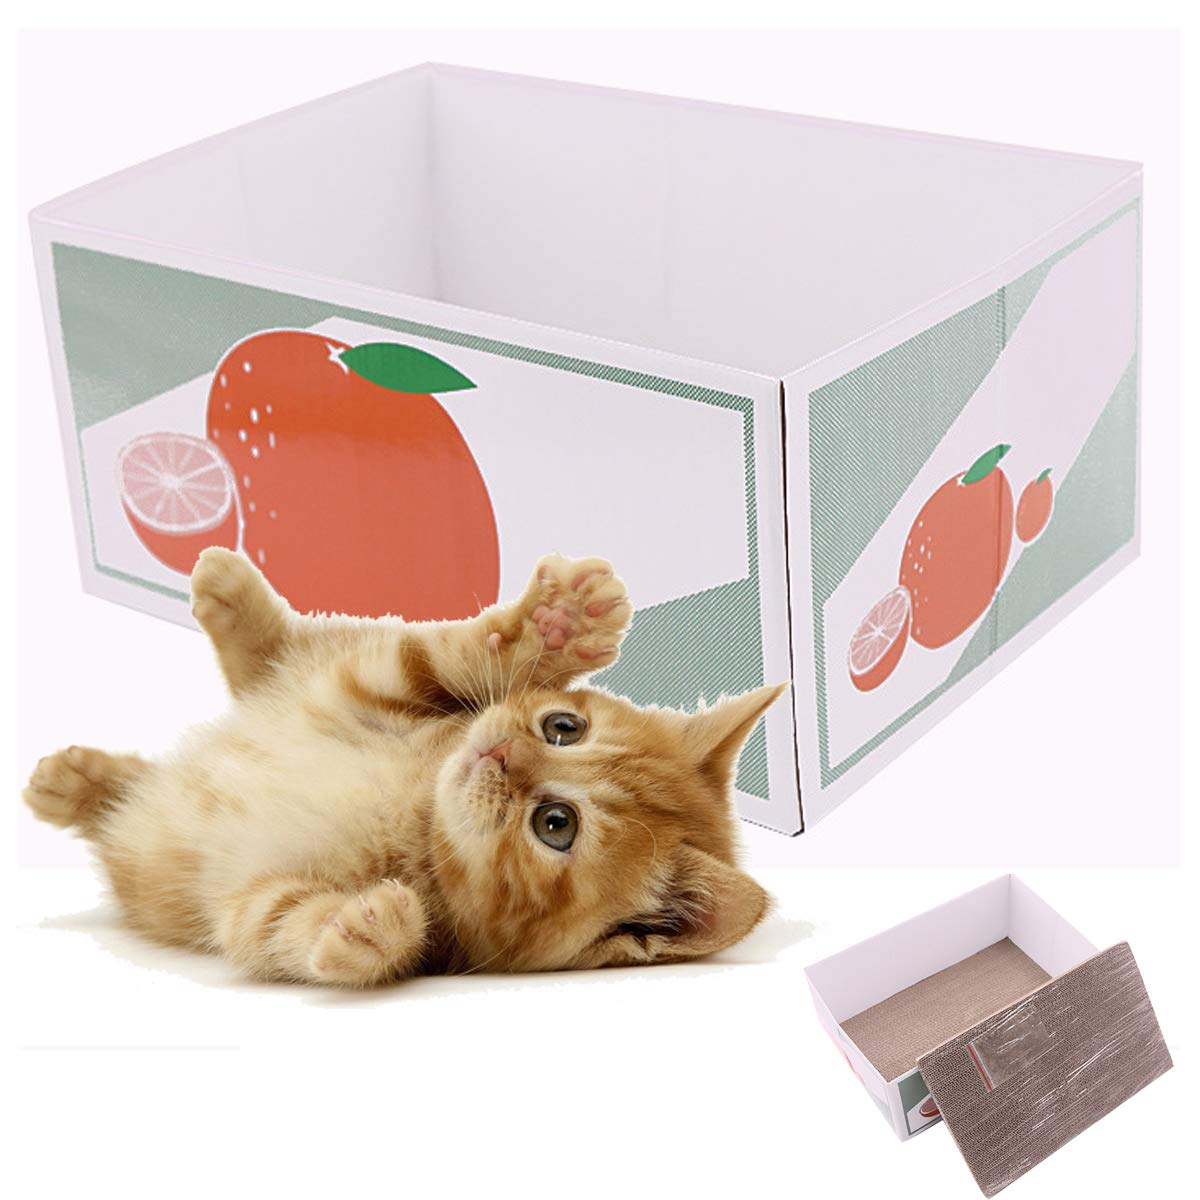 TEEMO Funny Scratcher Cardboard with Box, 2 Pieces in one Box.Catnip Included.